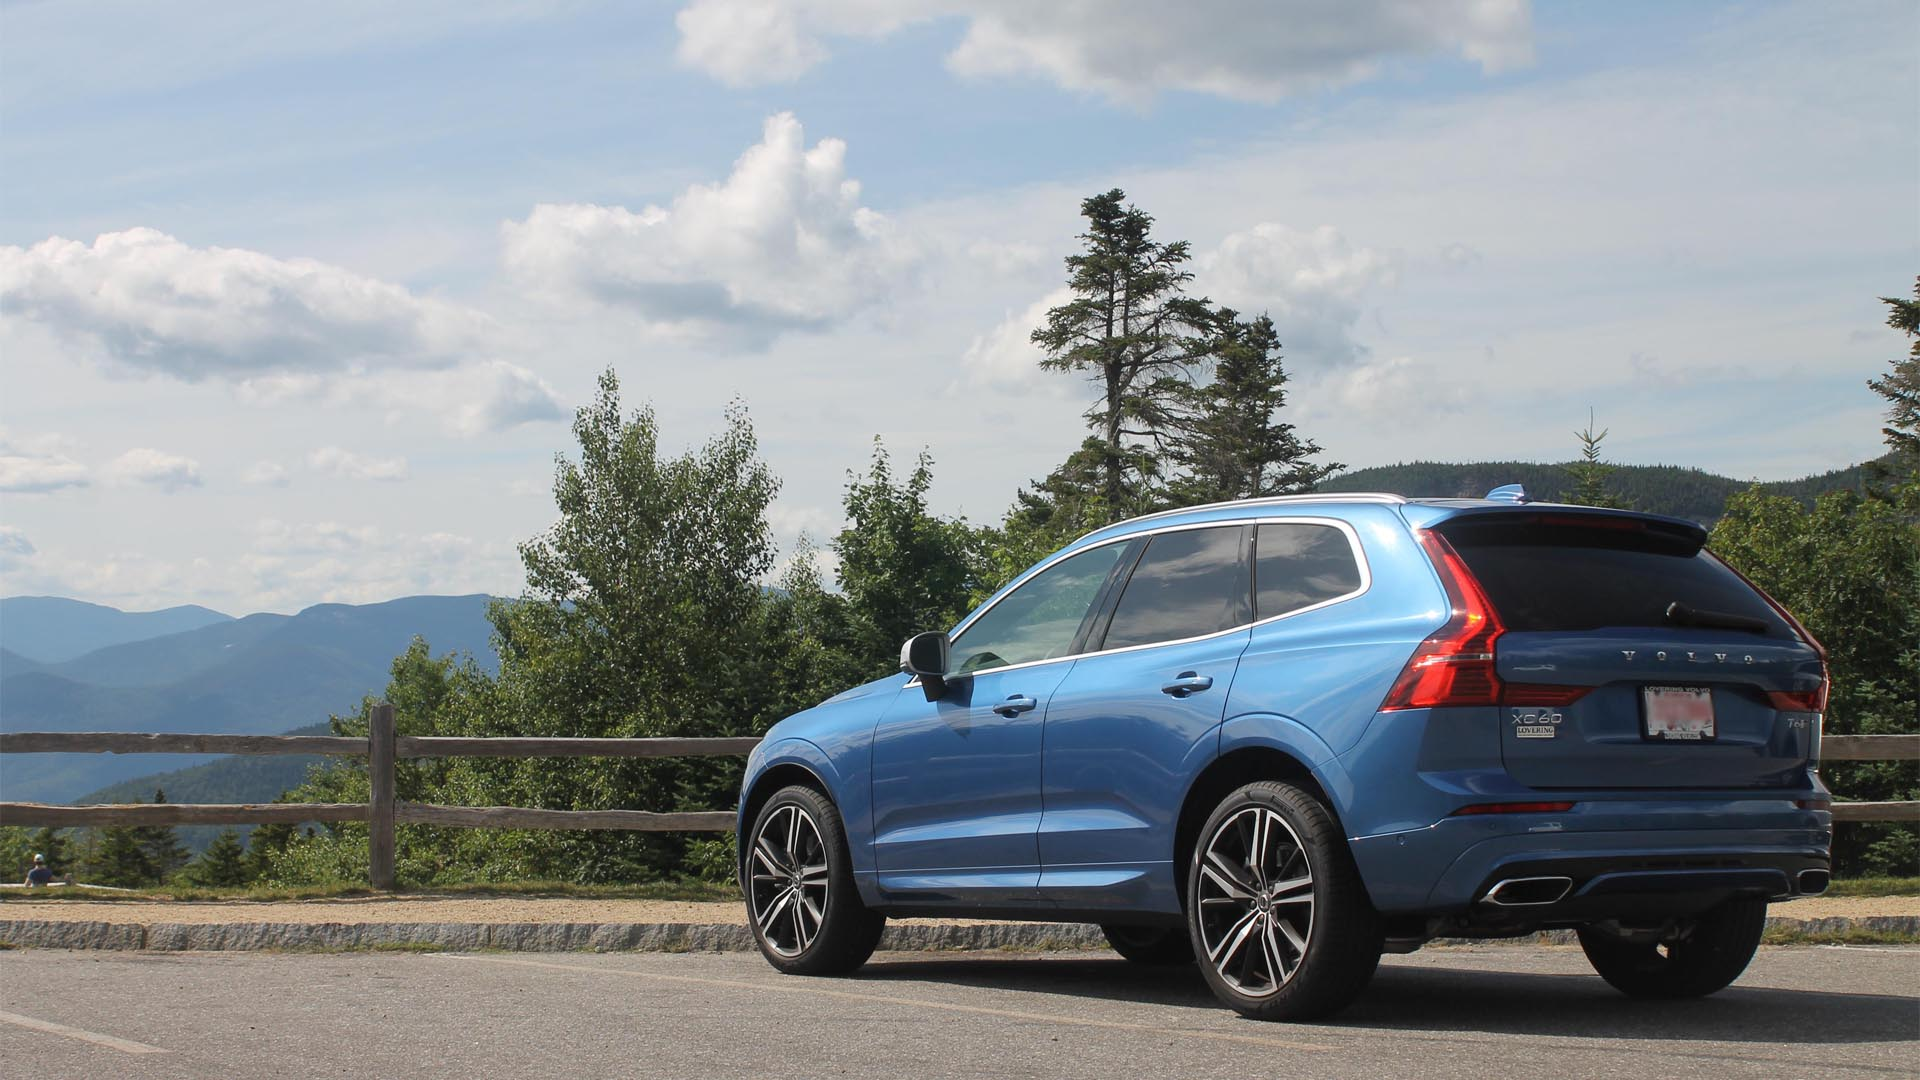 volvo-bursting-blue-metallic